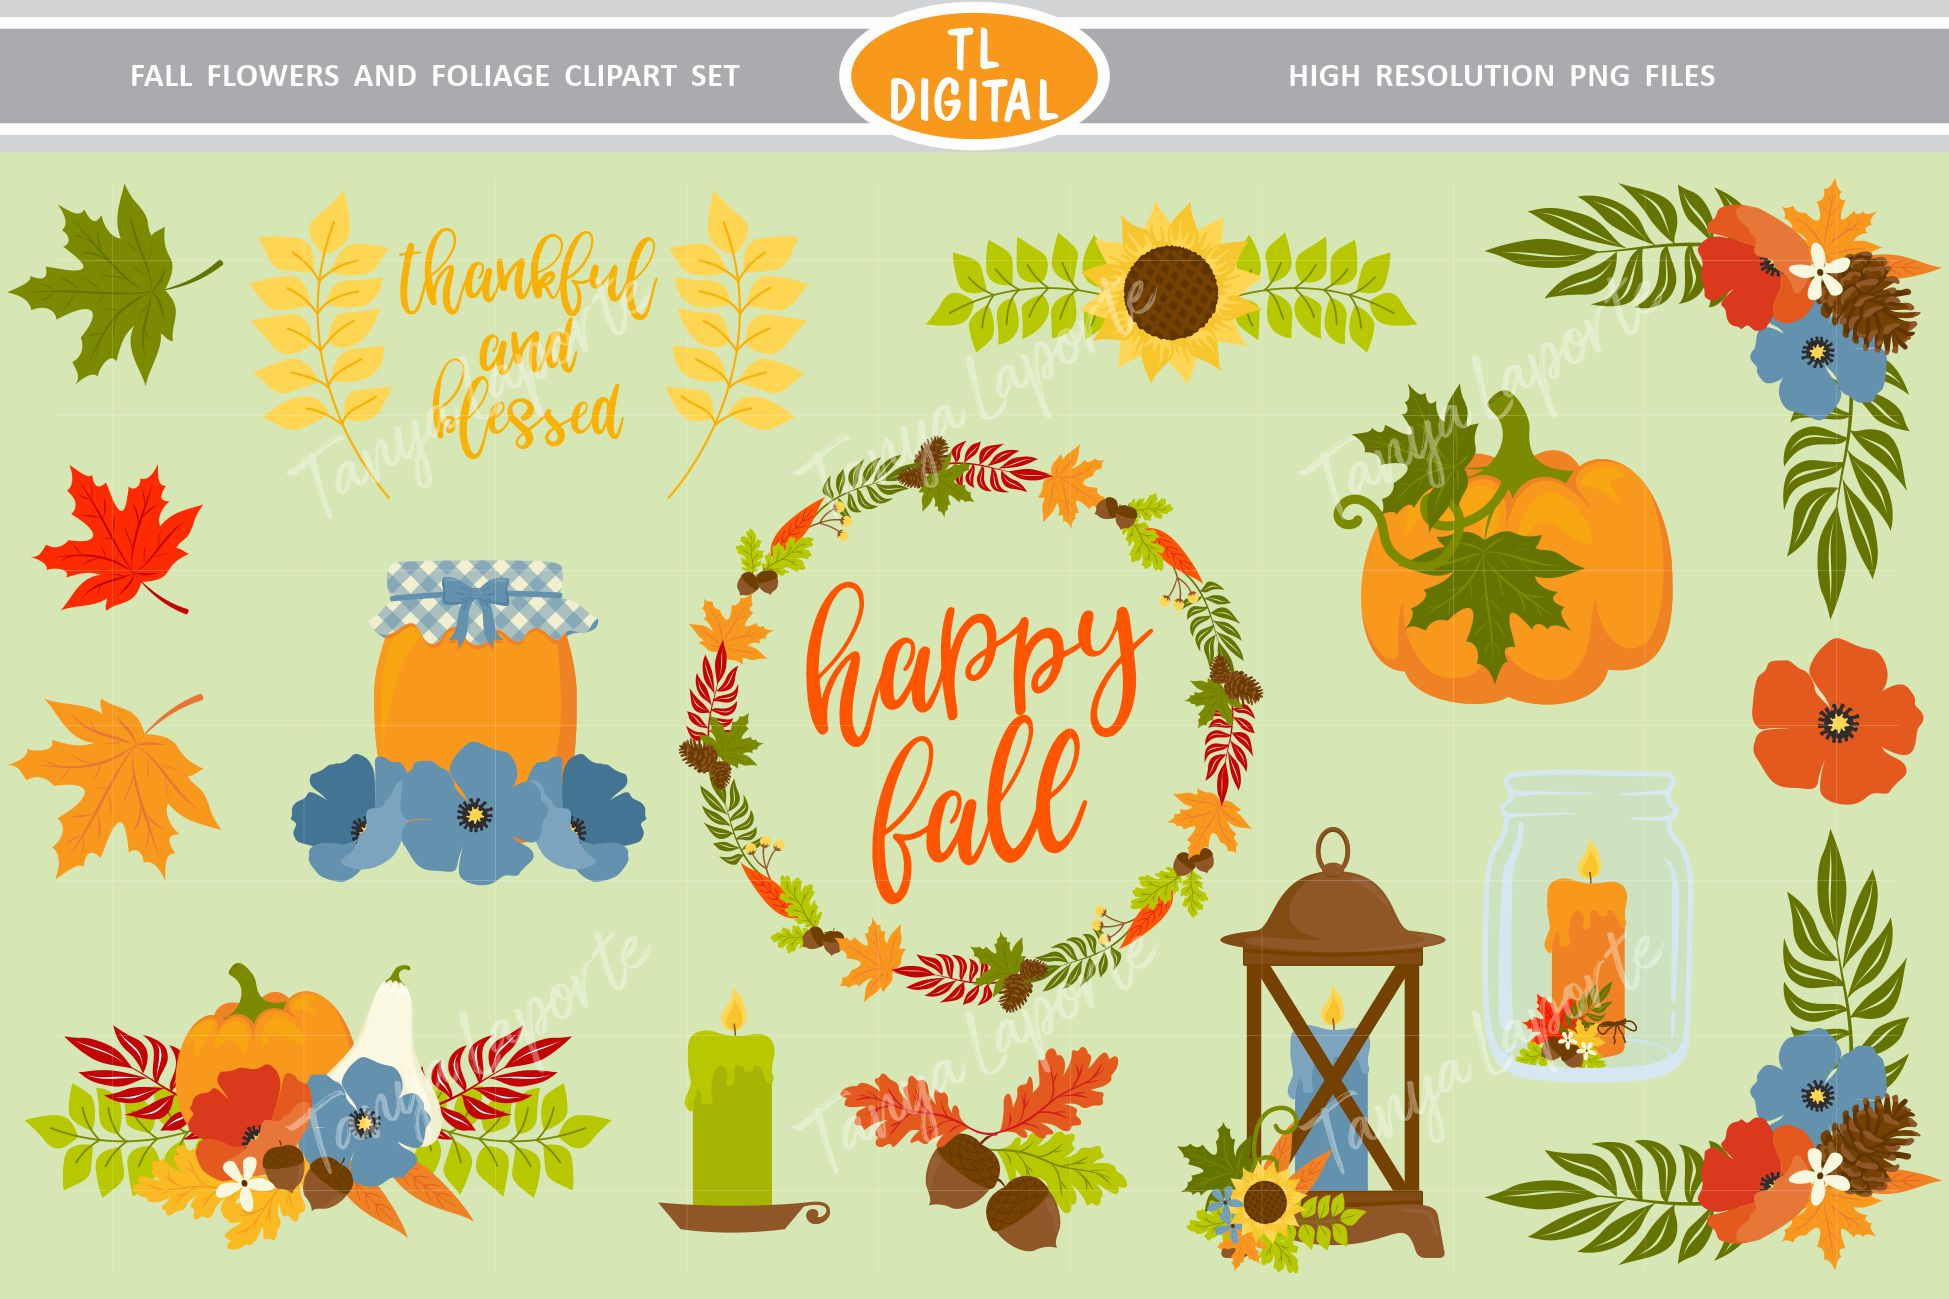 Download Free Fall Flowers And Foliage Graphic By Tl Digital Creative Fabrica for Cricut Explore, Silhouette and other cutting machines.